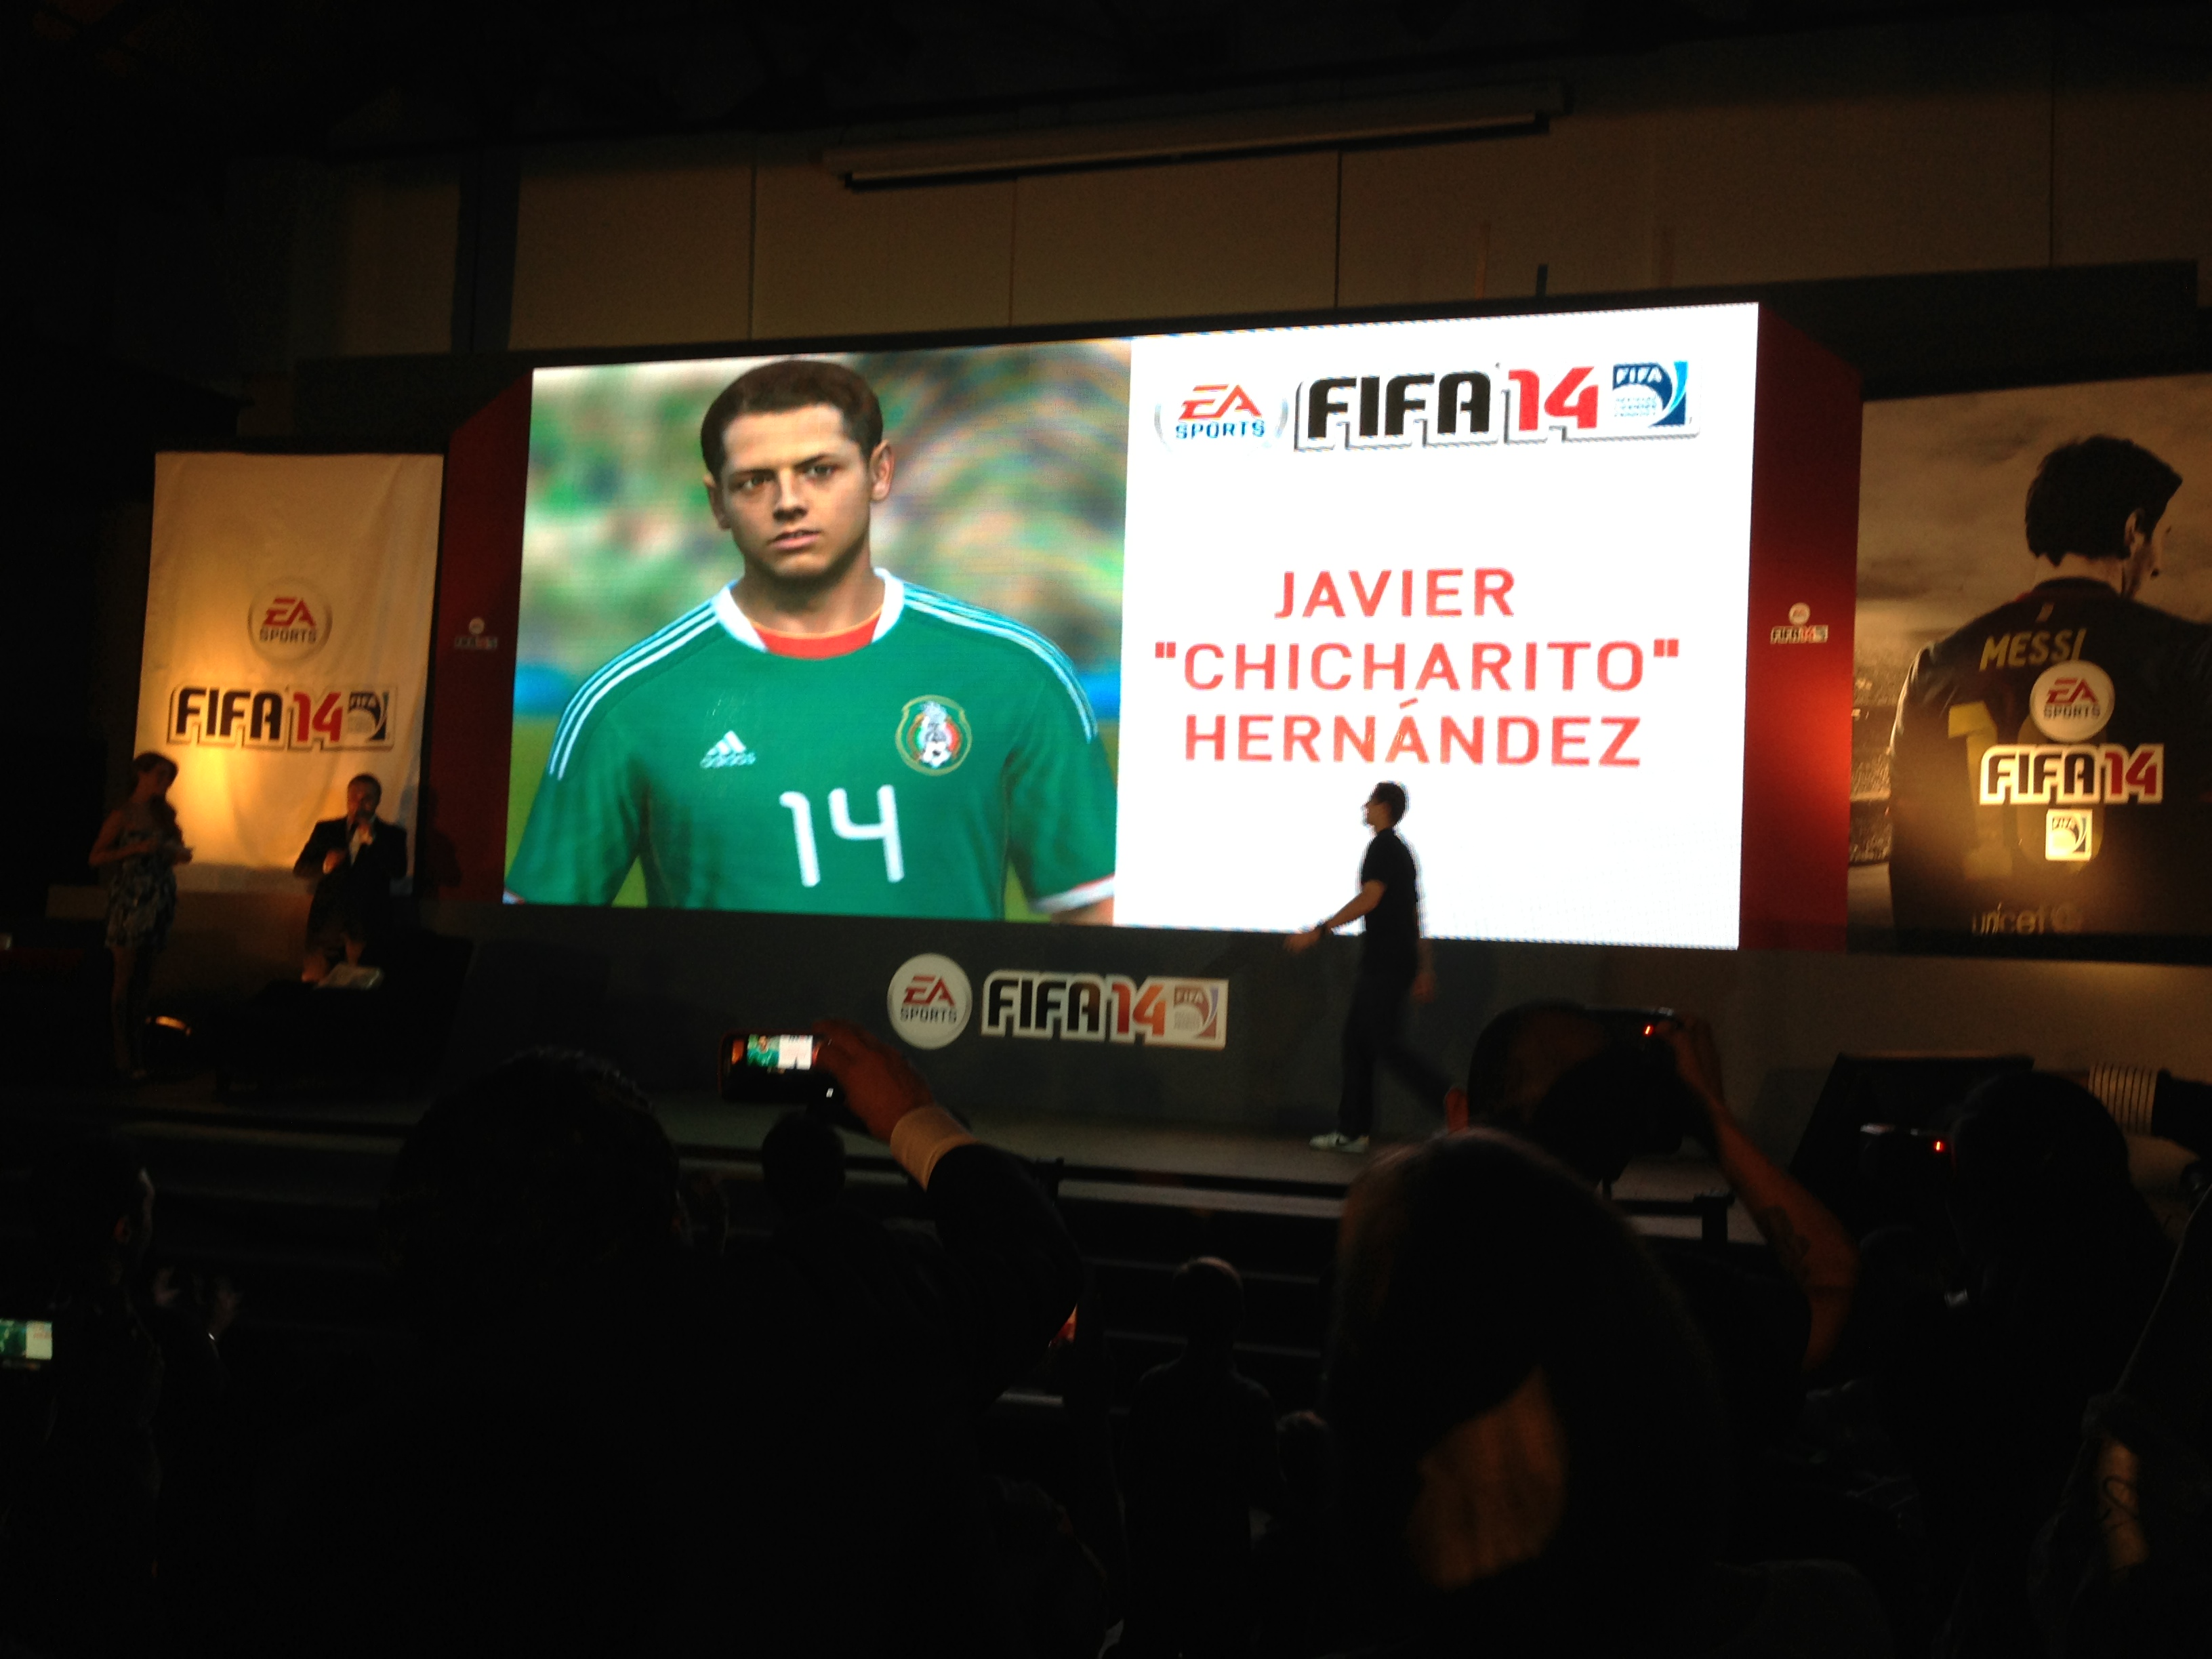 FIFA 14 - Chicharito